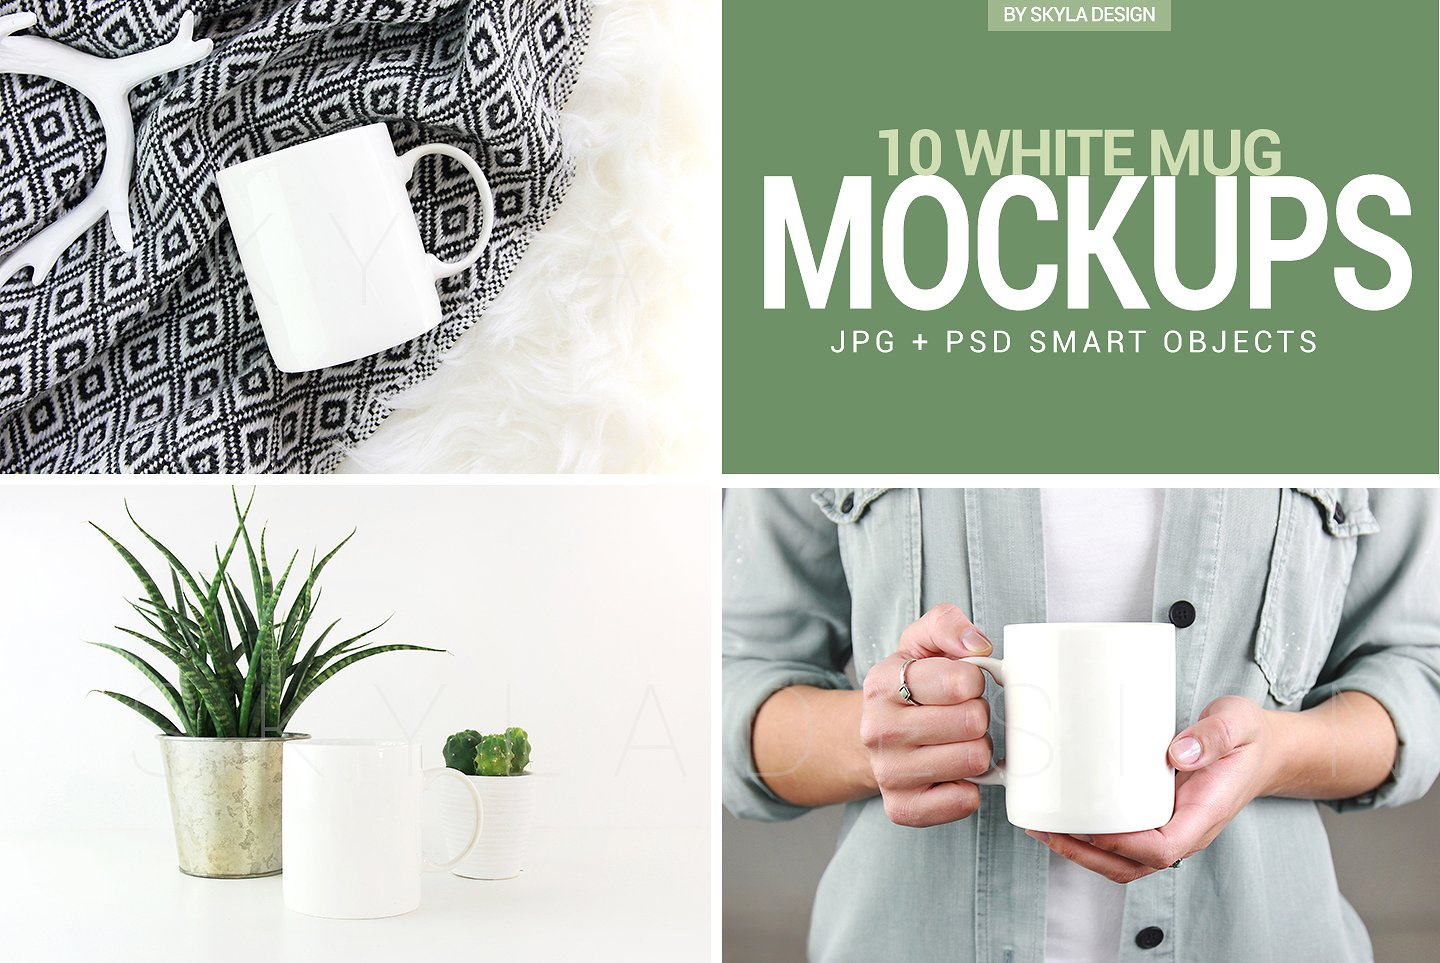 Skyla Design at Creative Market has a lot of modern and yet feminine (without being fru fru) mockup files. This set of coffee mugs is my latest go-to mockups I use for my lettering projects on Instagram as well as showcasing my SVG files for sale.